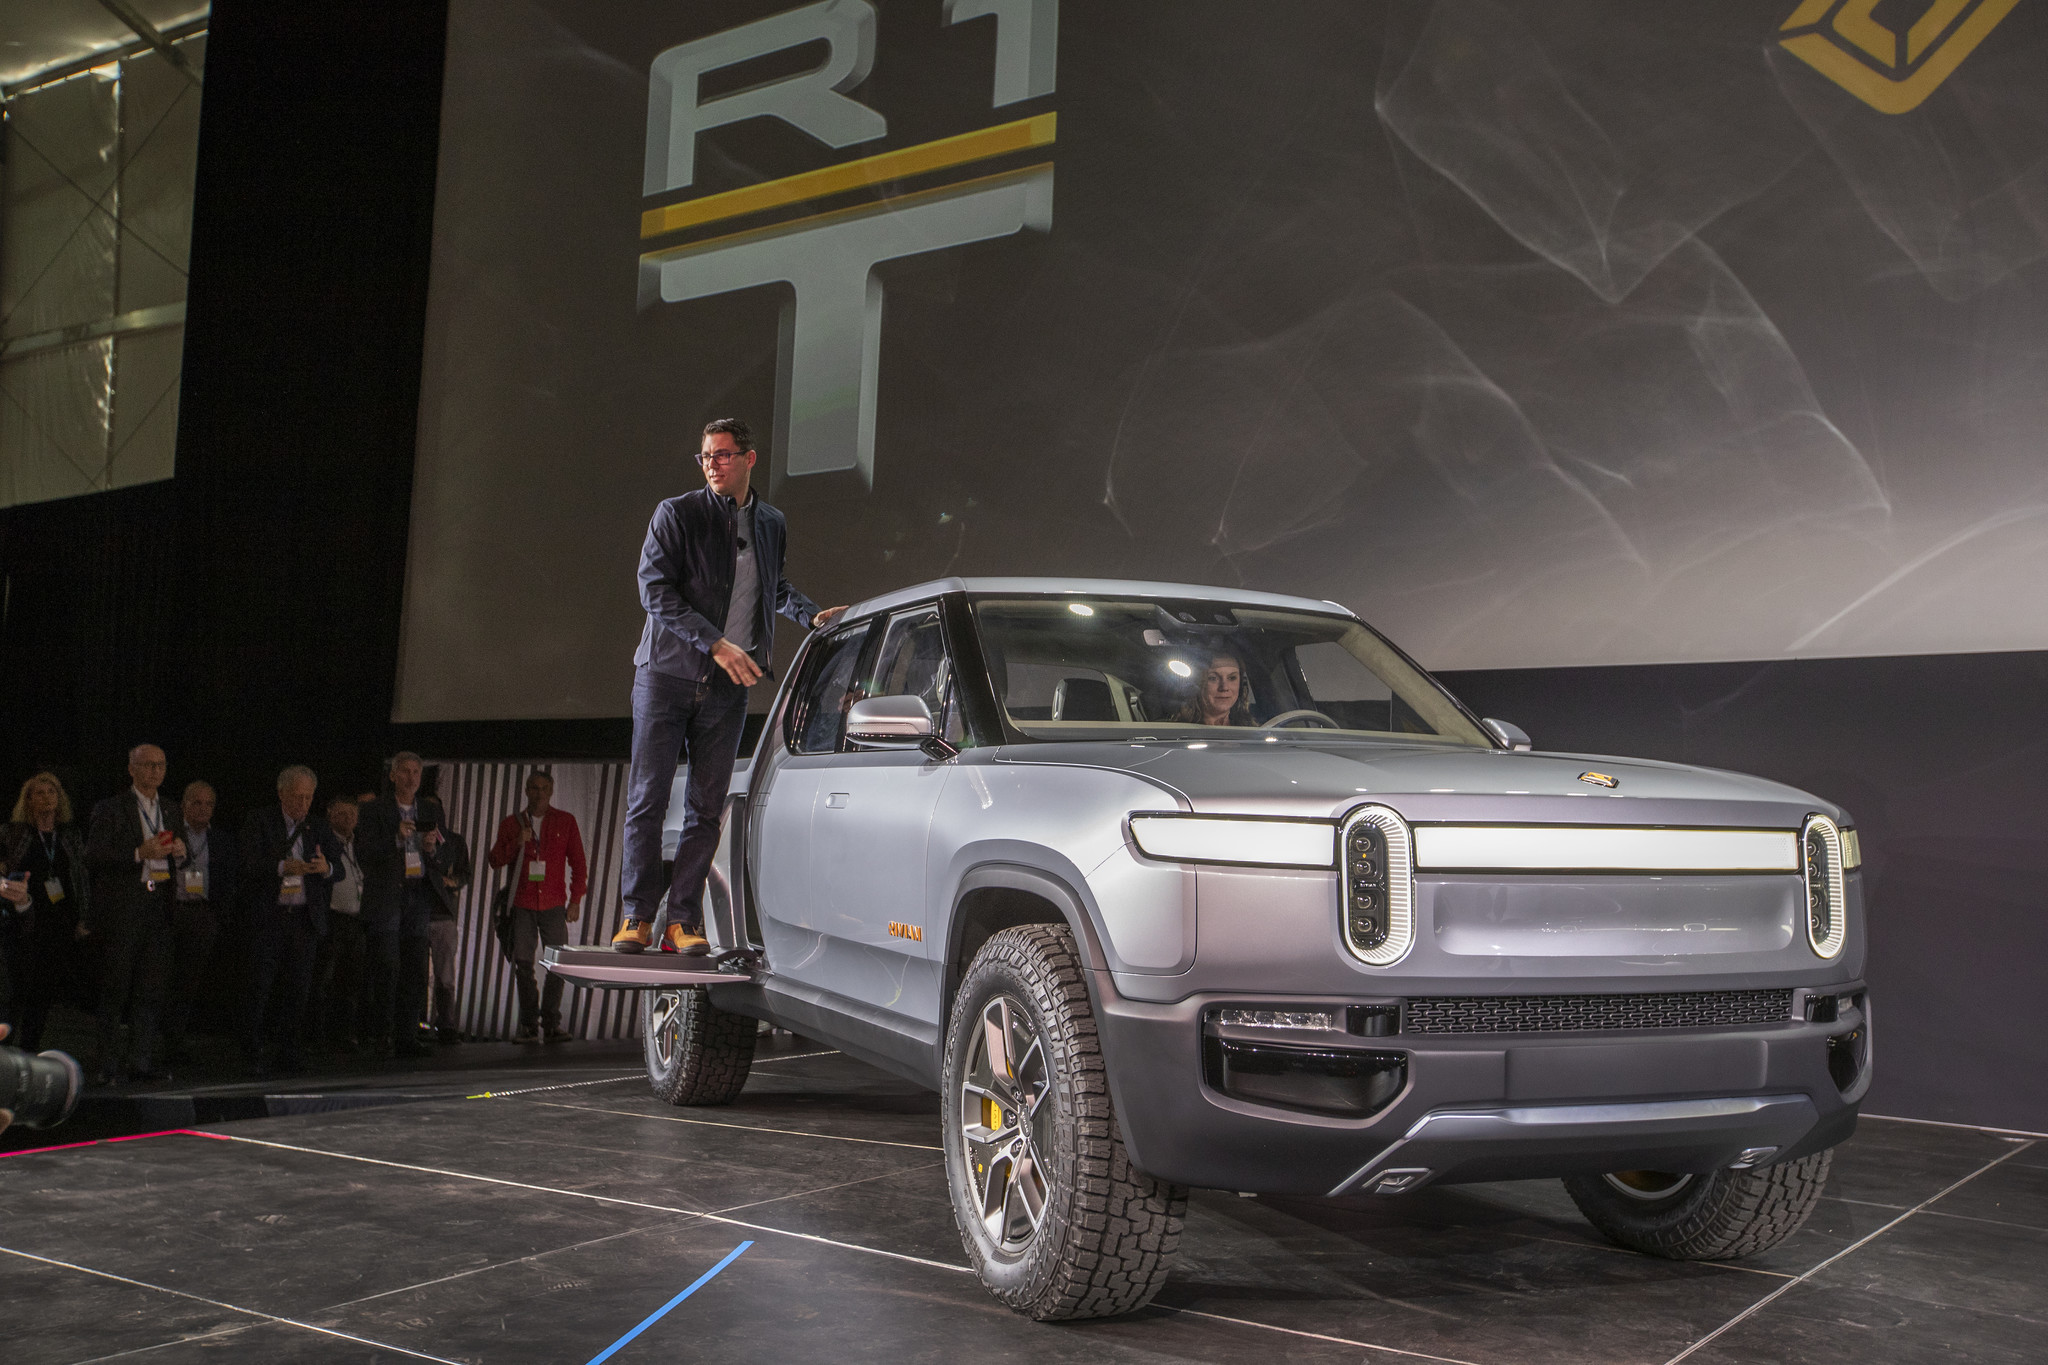 Electric vehicle-maker Rivian lands $500 million from Ford as startup gears up at downstate factory